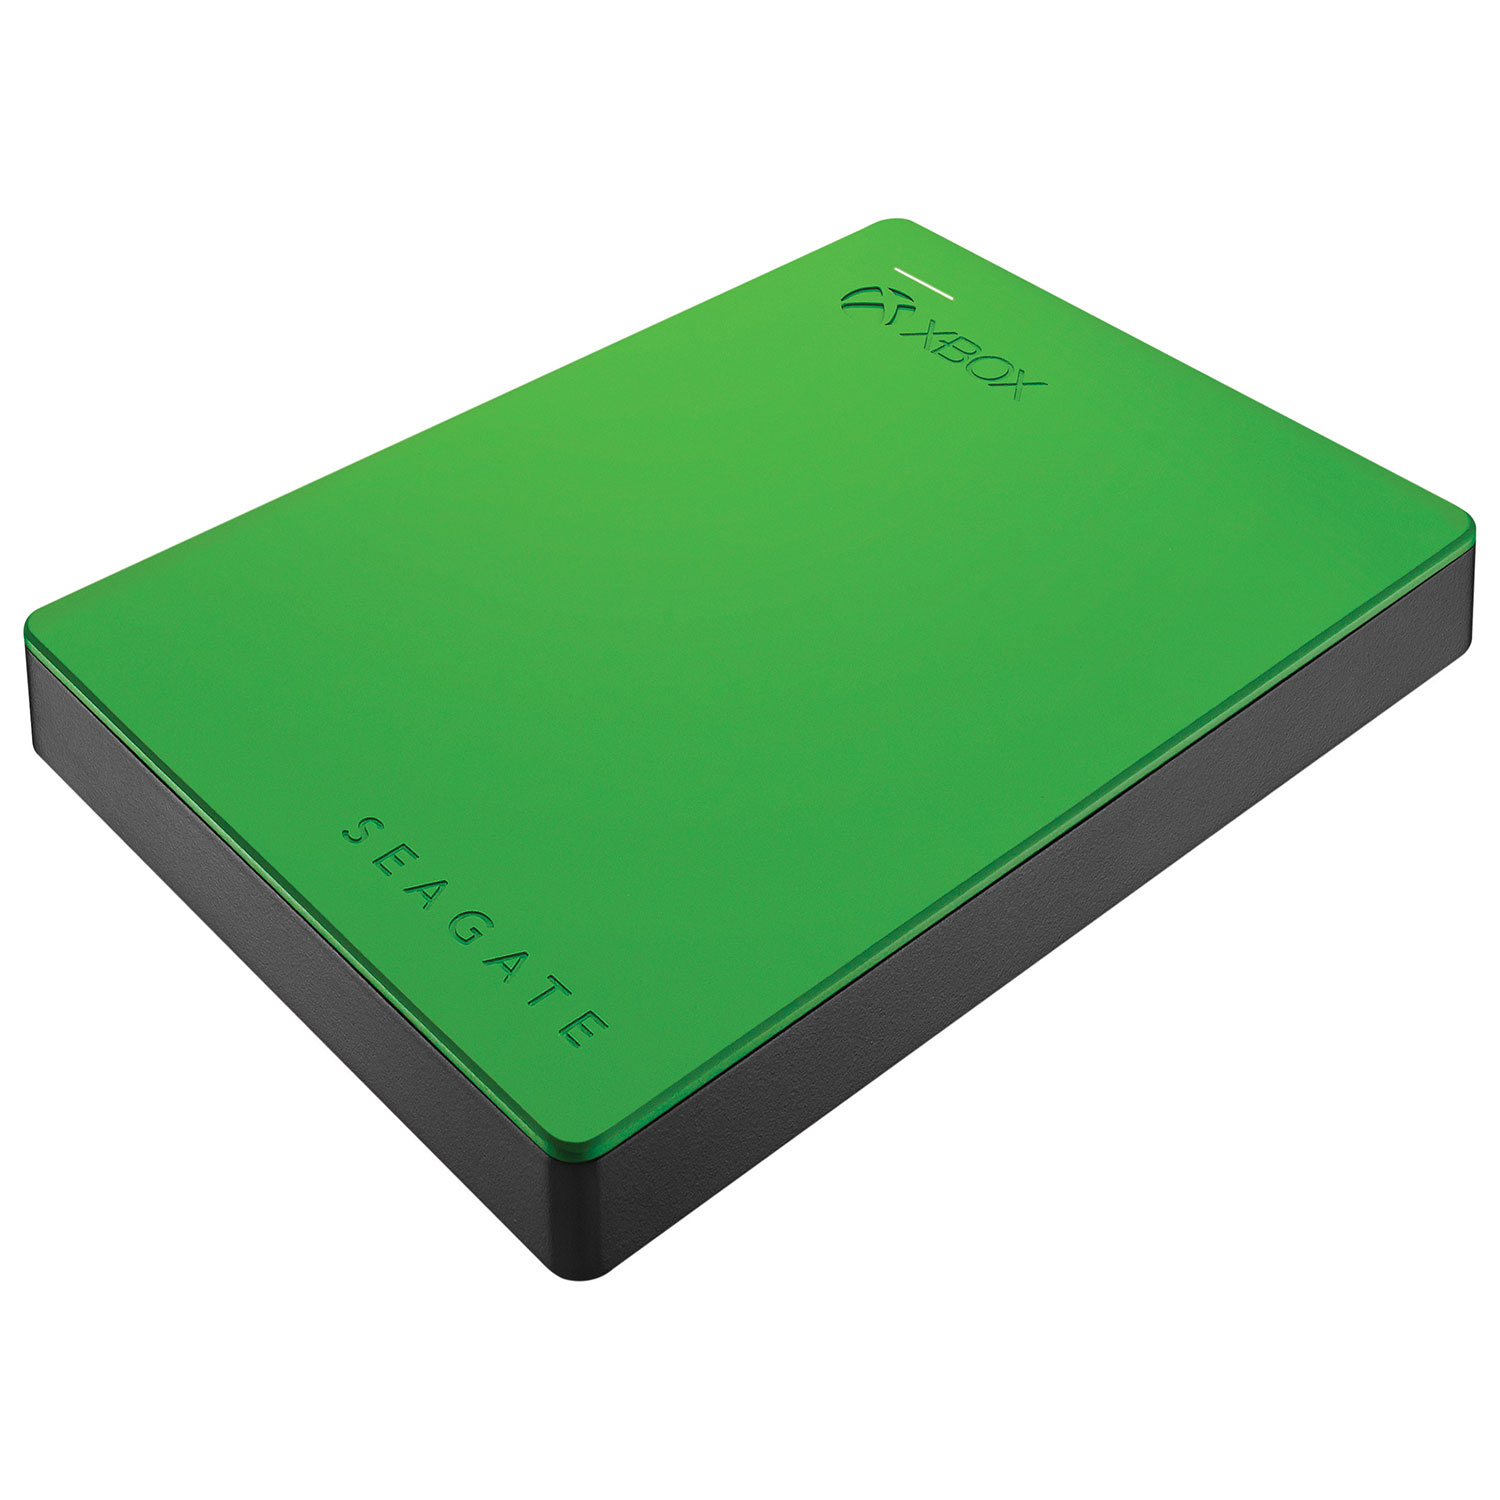 Are there any benefits of buying a mobile hard disk if you have a memory pen?